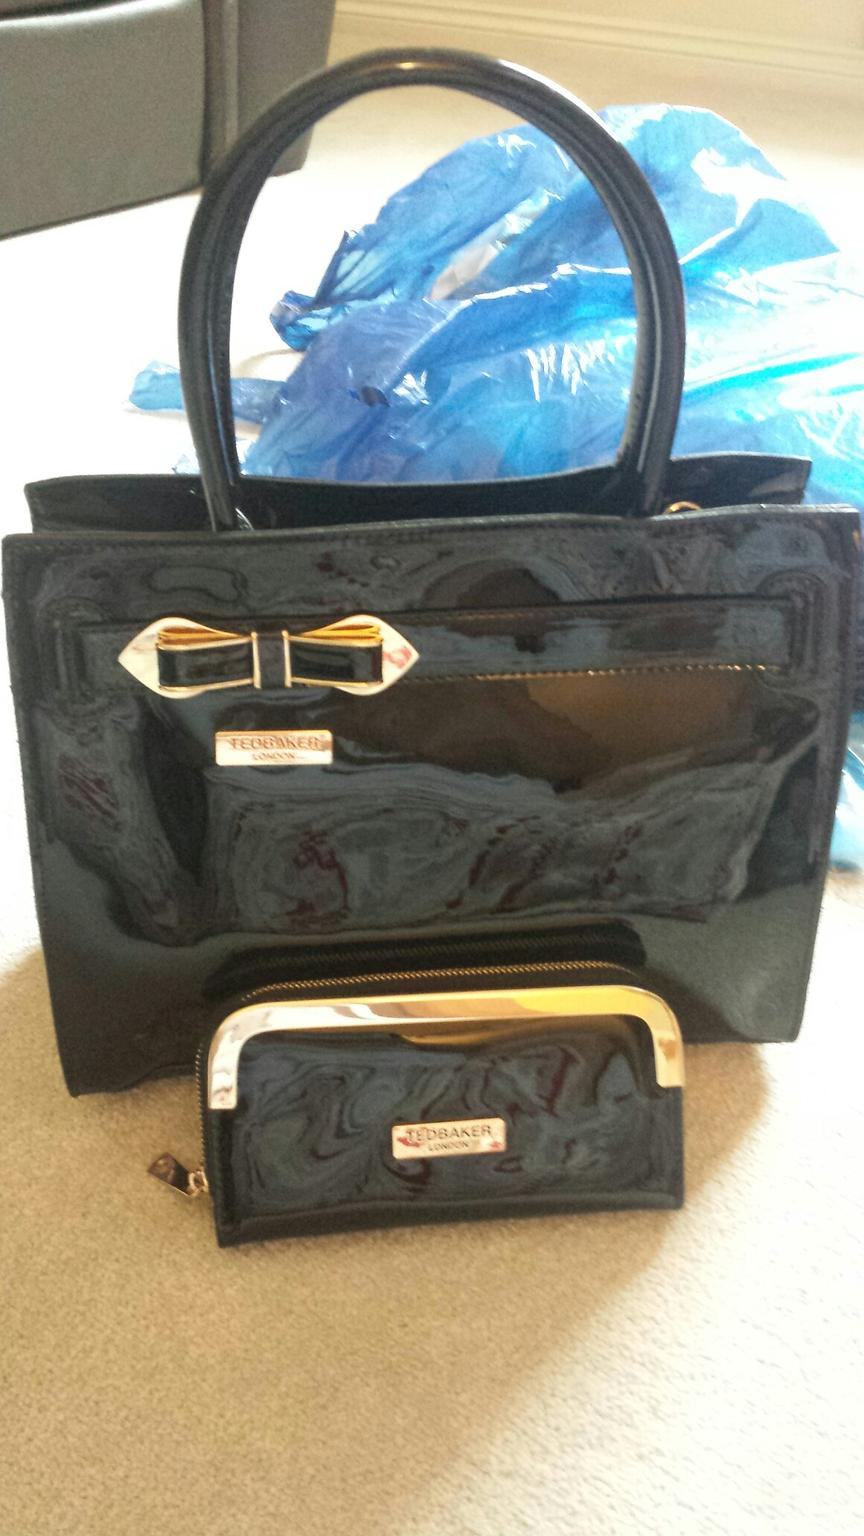 549b4ae74 Ted Baker Purse And Bag Set - Best Purse Image Ccdbb.Org